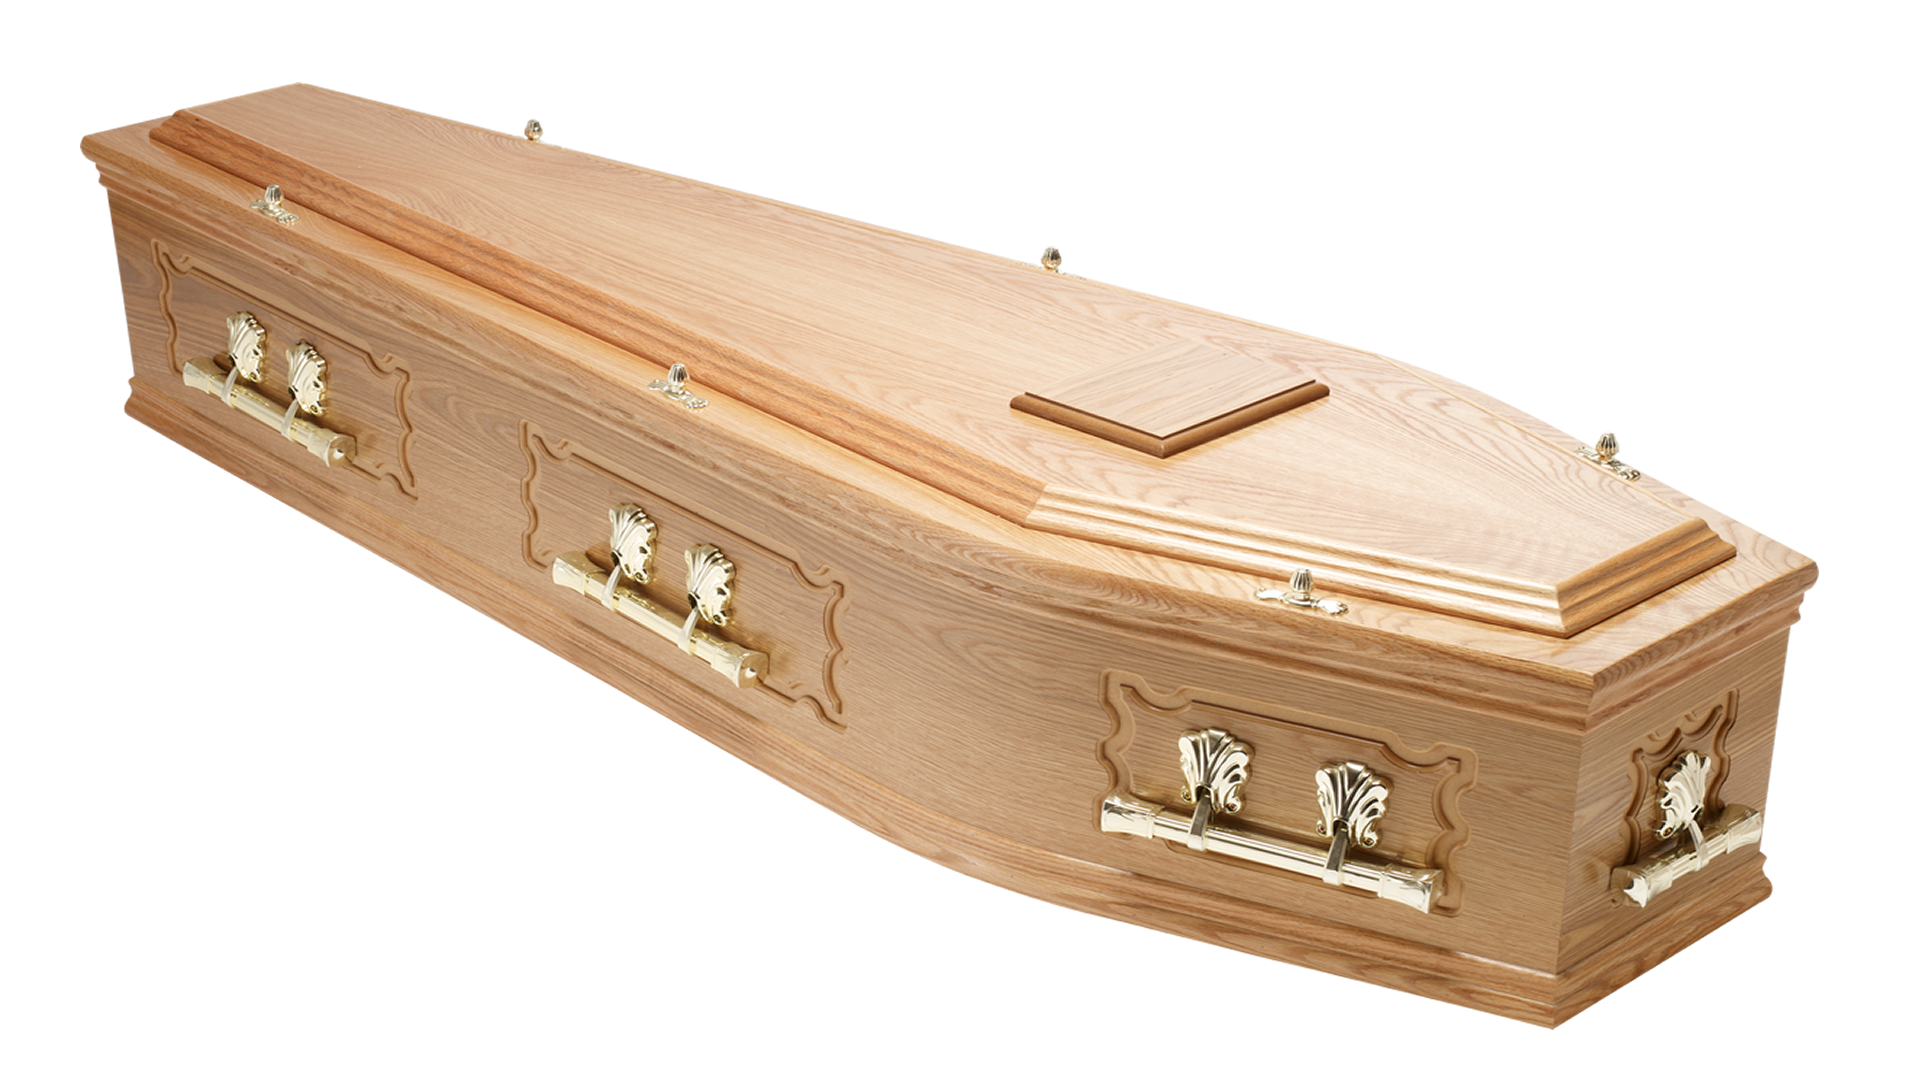 Transparent coffin wood. Traditional raised lid and